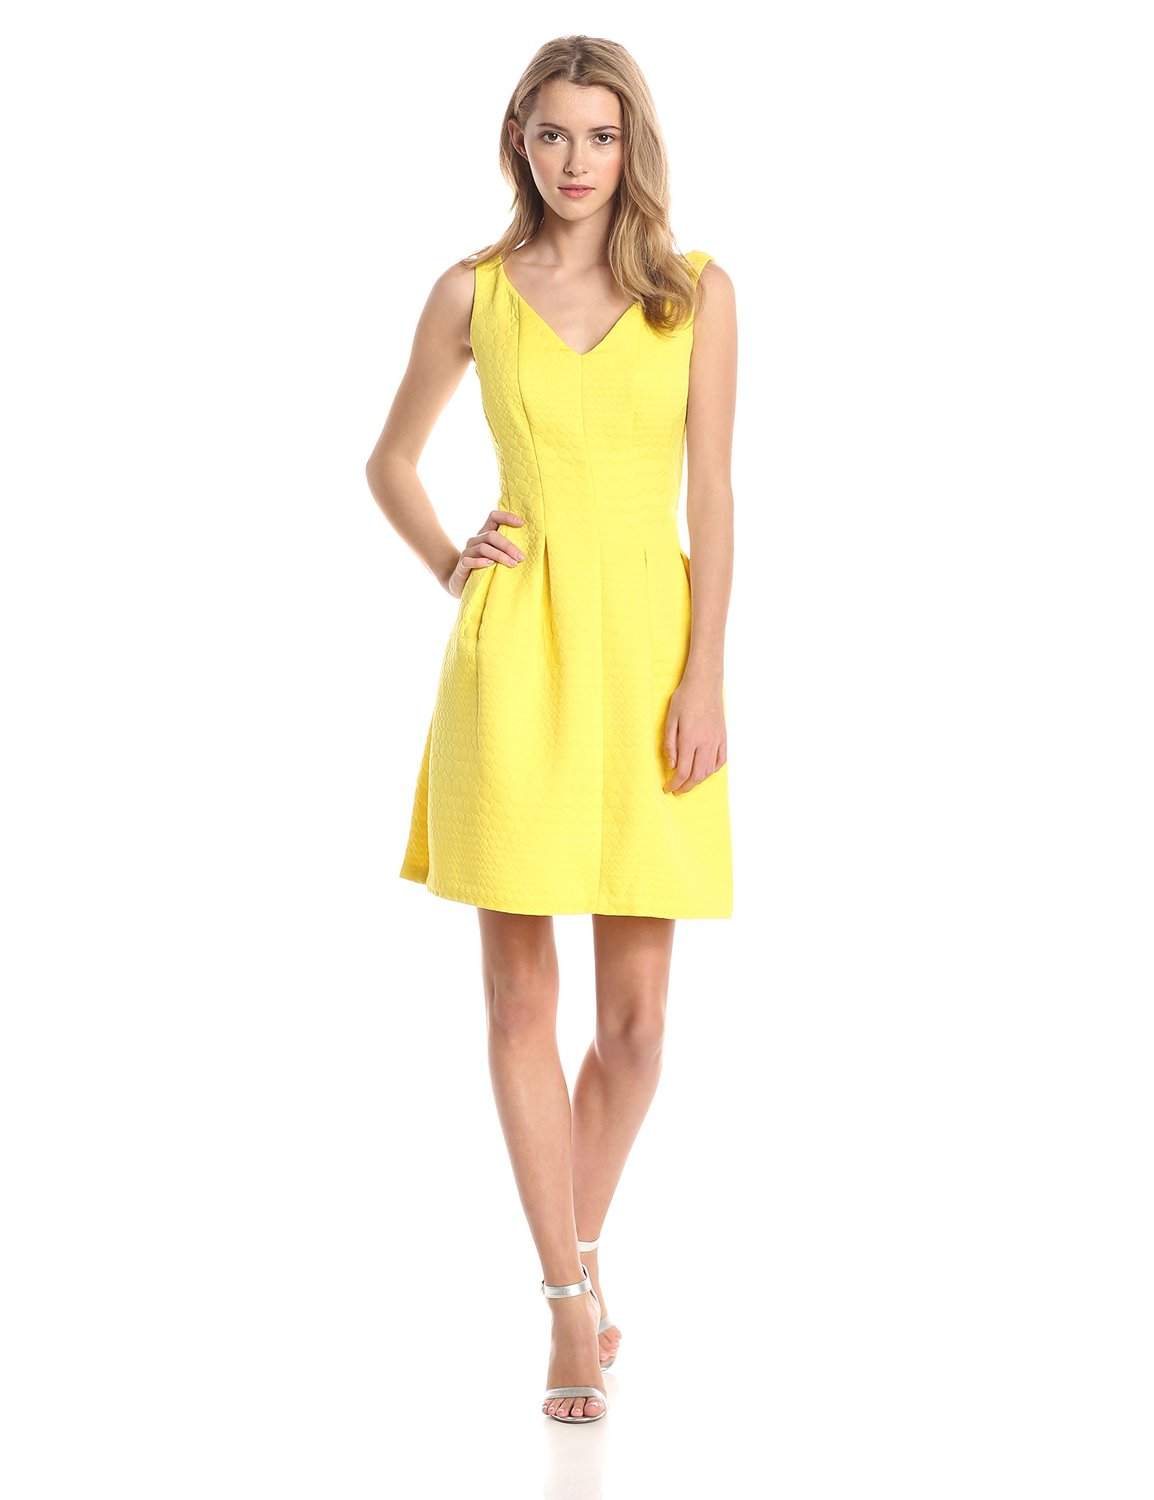 Taylor Dresses Womens Bubble Jacquard Fit-and-Flare Dress